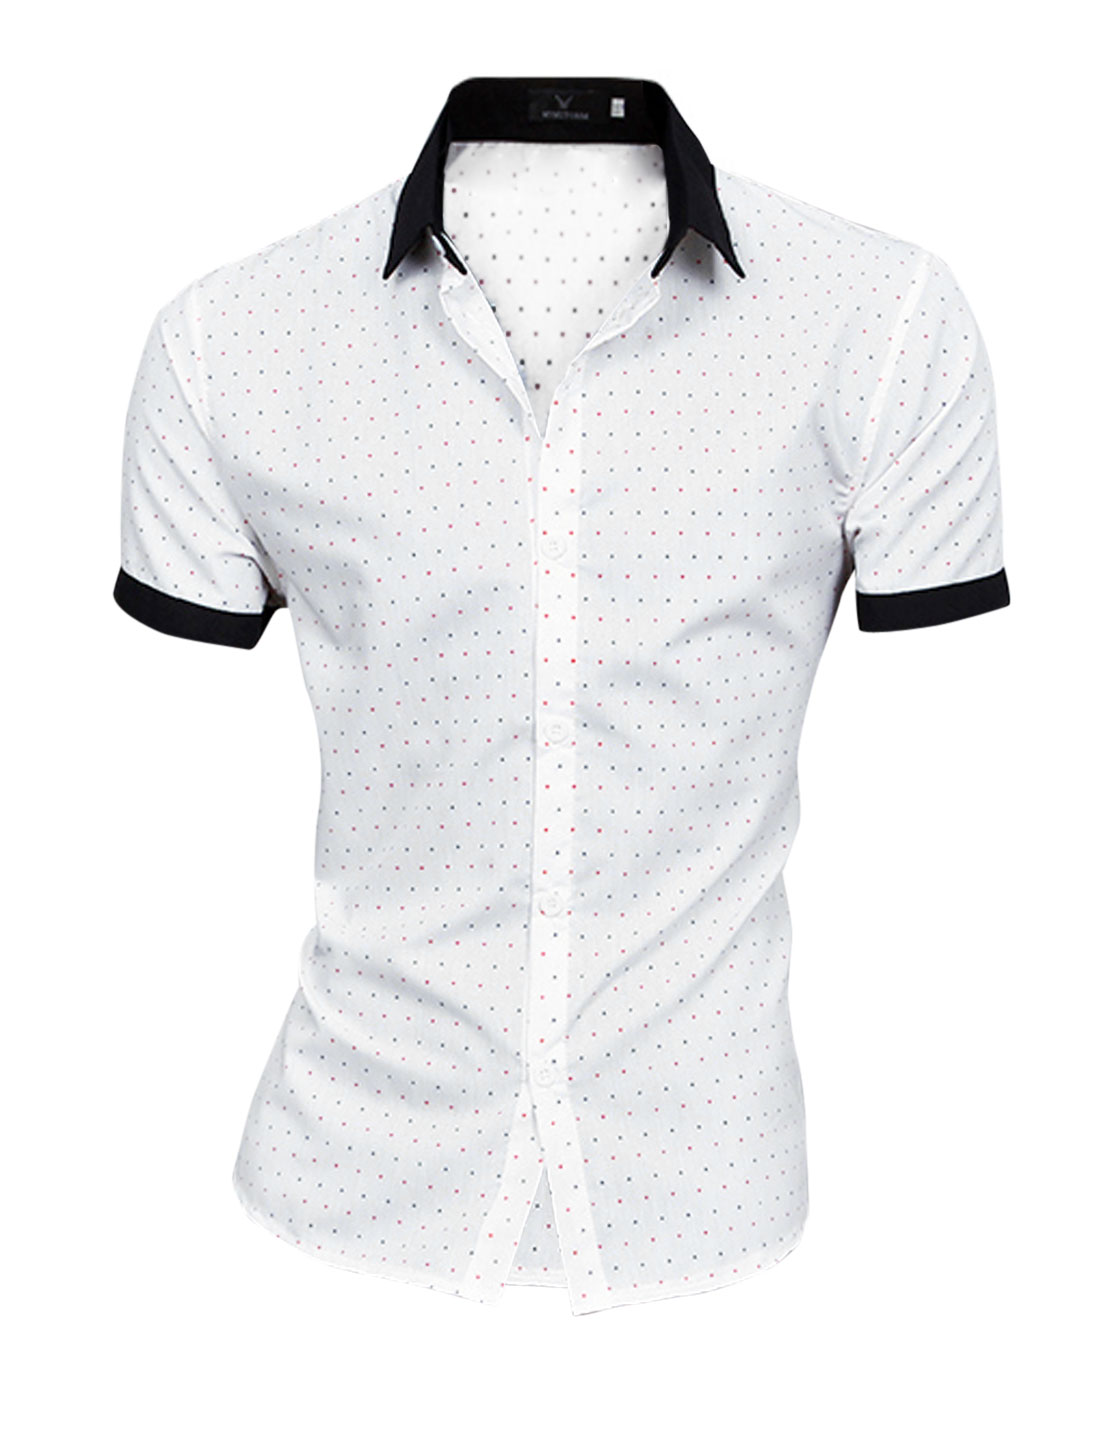 Men Point Collar Hearts Pattern Chic NEW Top Shirt White M